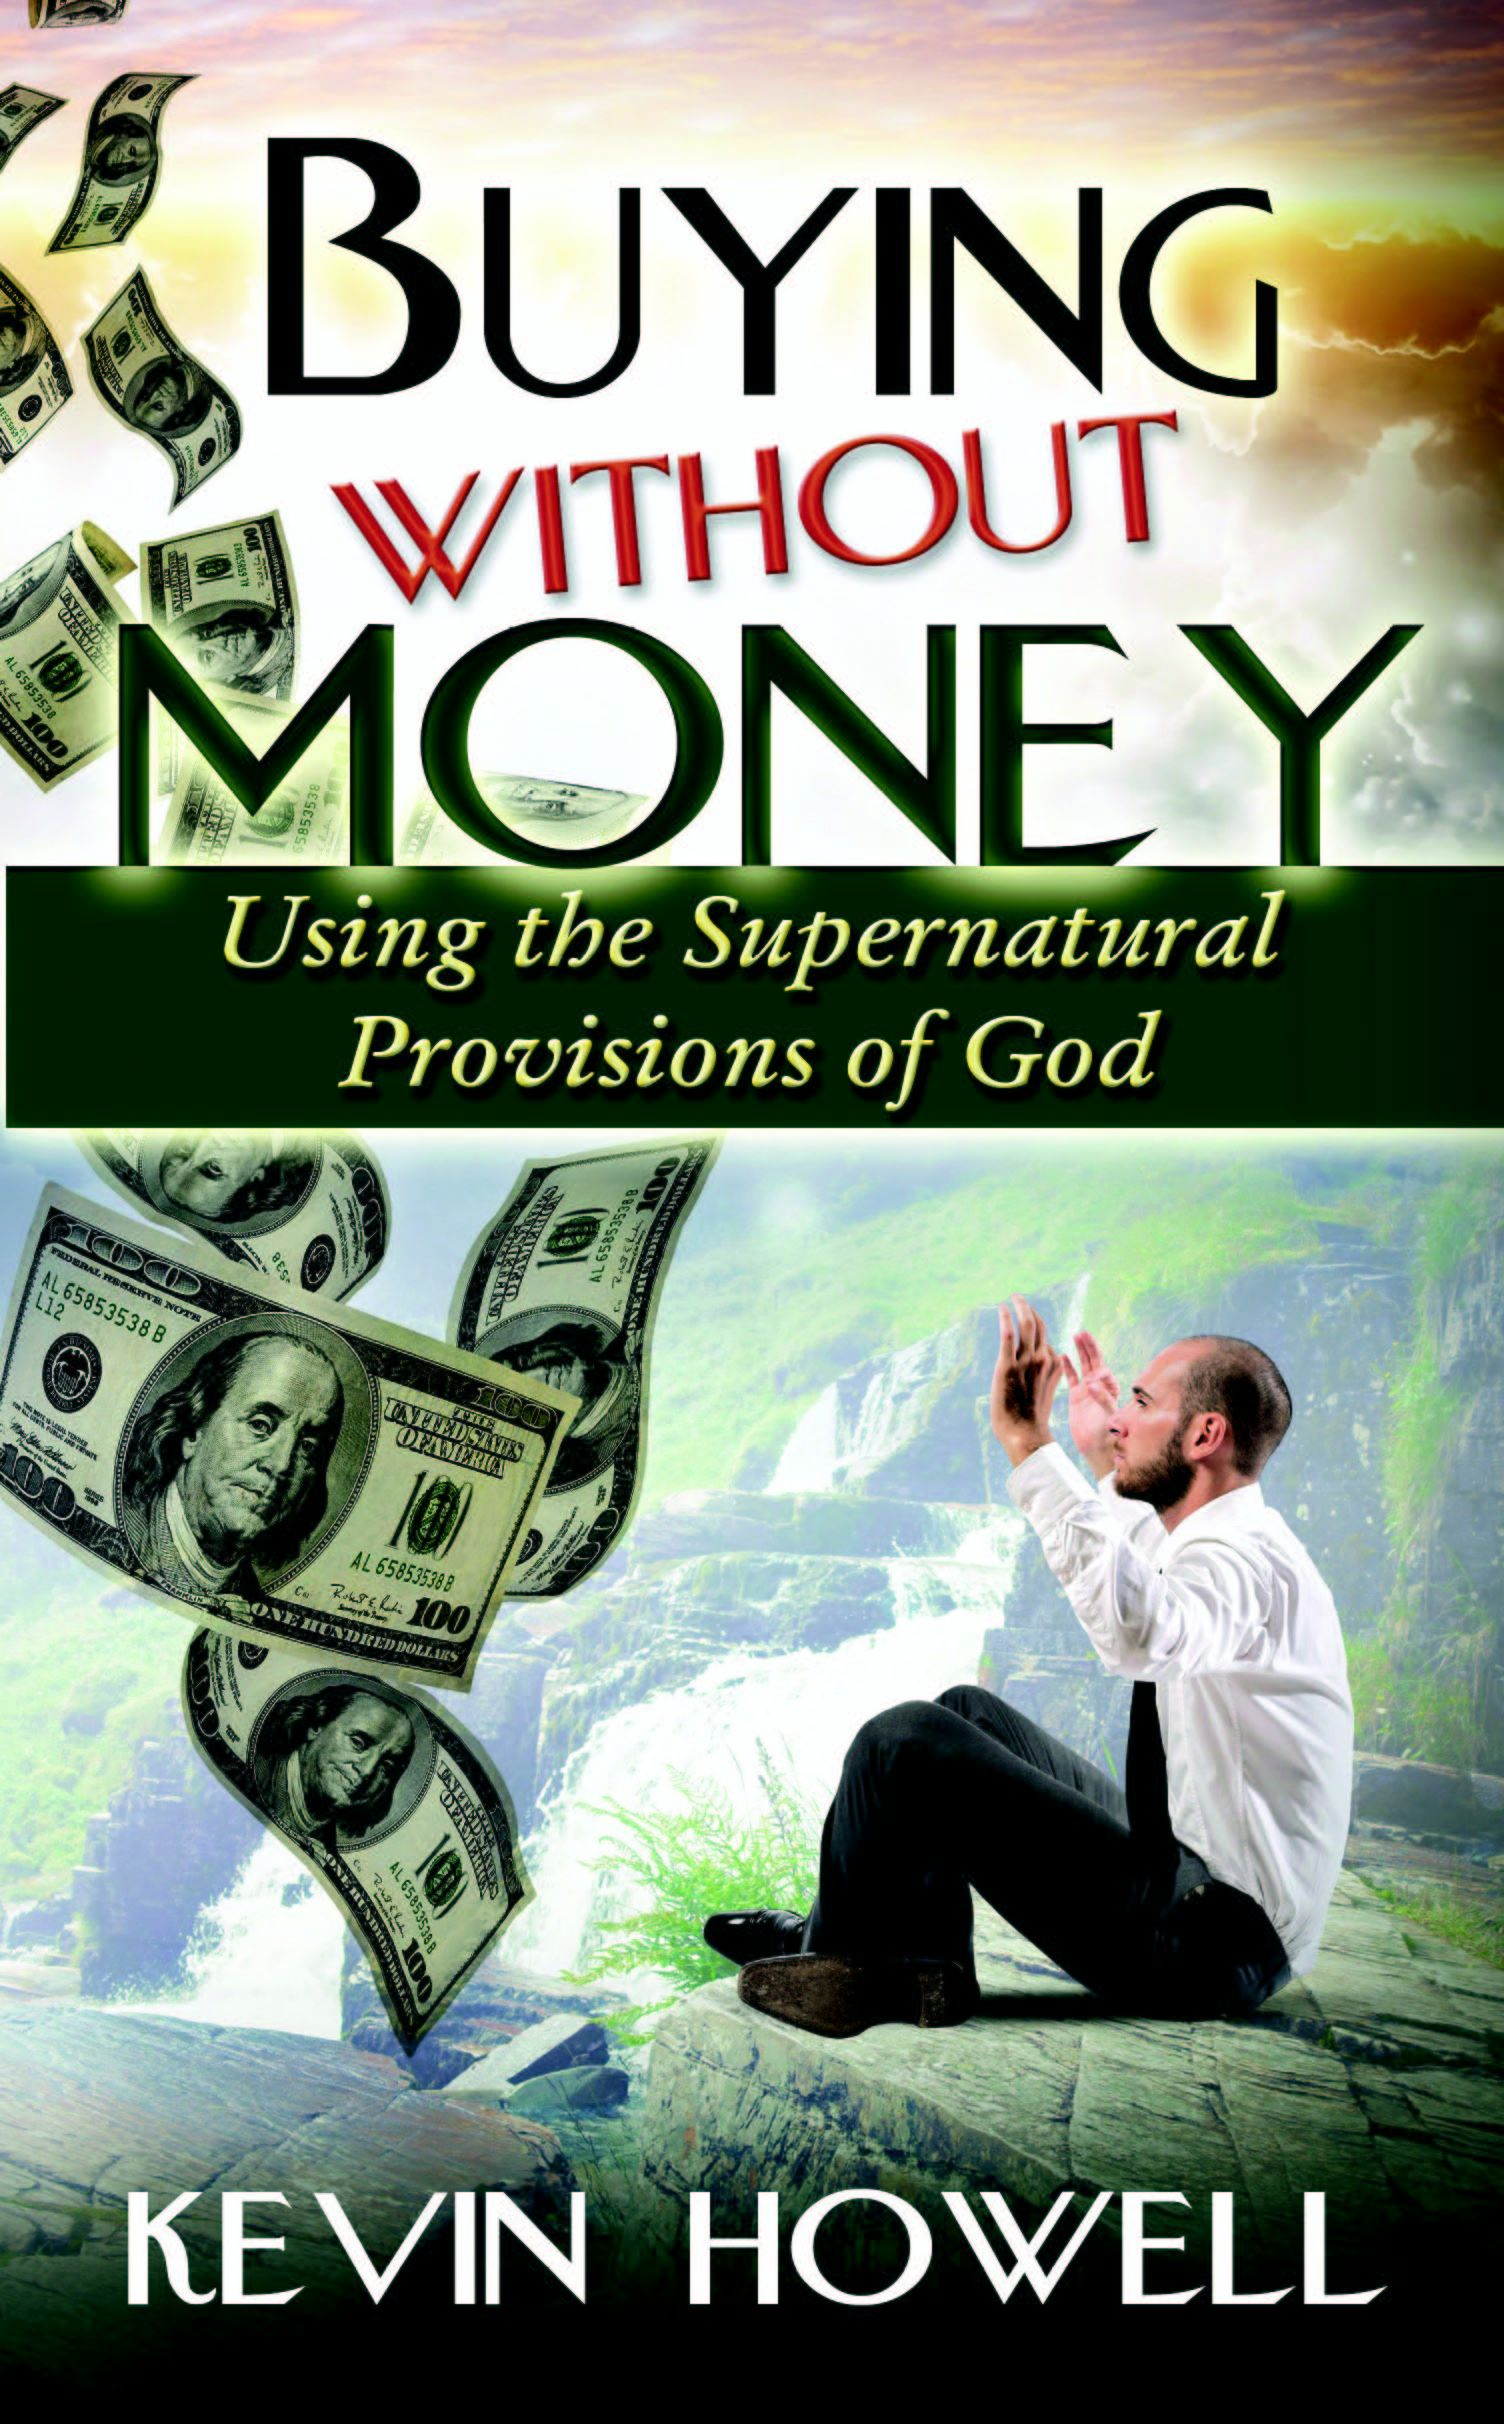 Buying Without Money: Using the Supernatural Provisions of God - by Kevin Howell